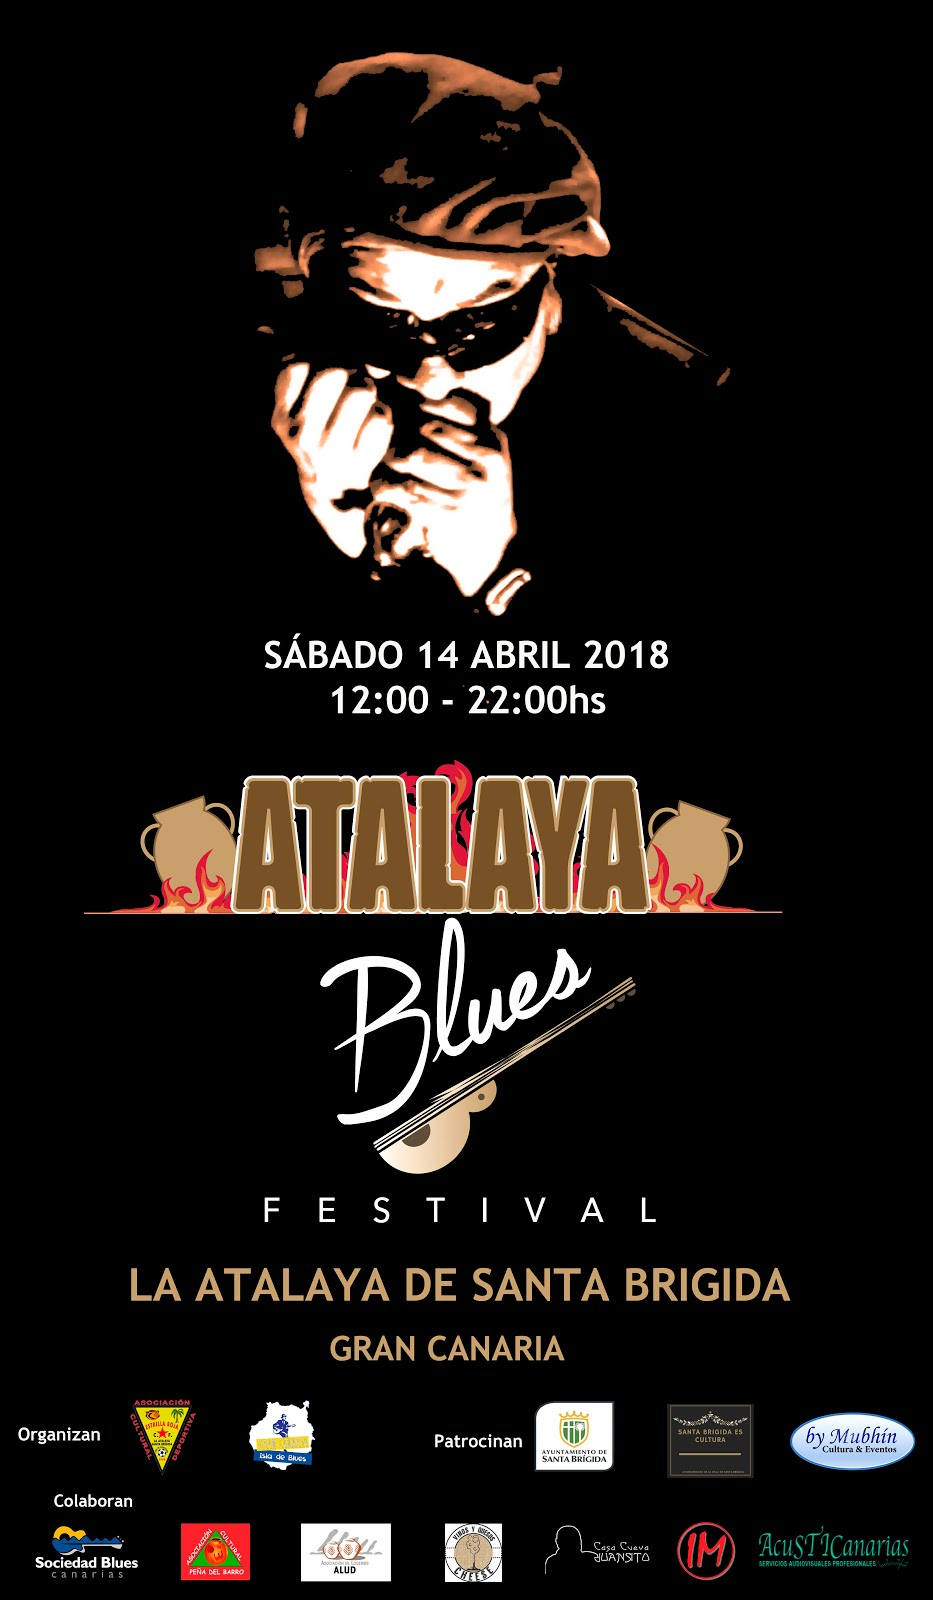 ATALAYA BLUES. Sábado 14 de Abril 2018